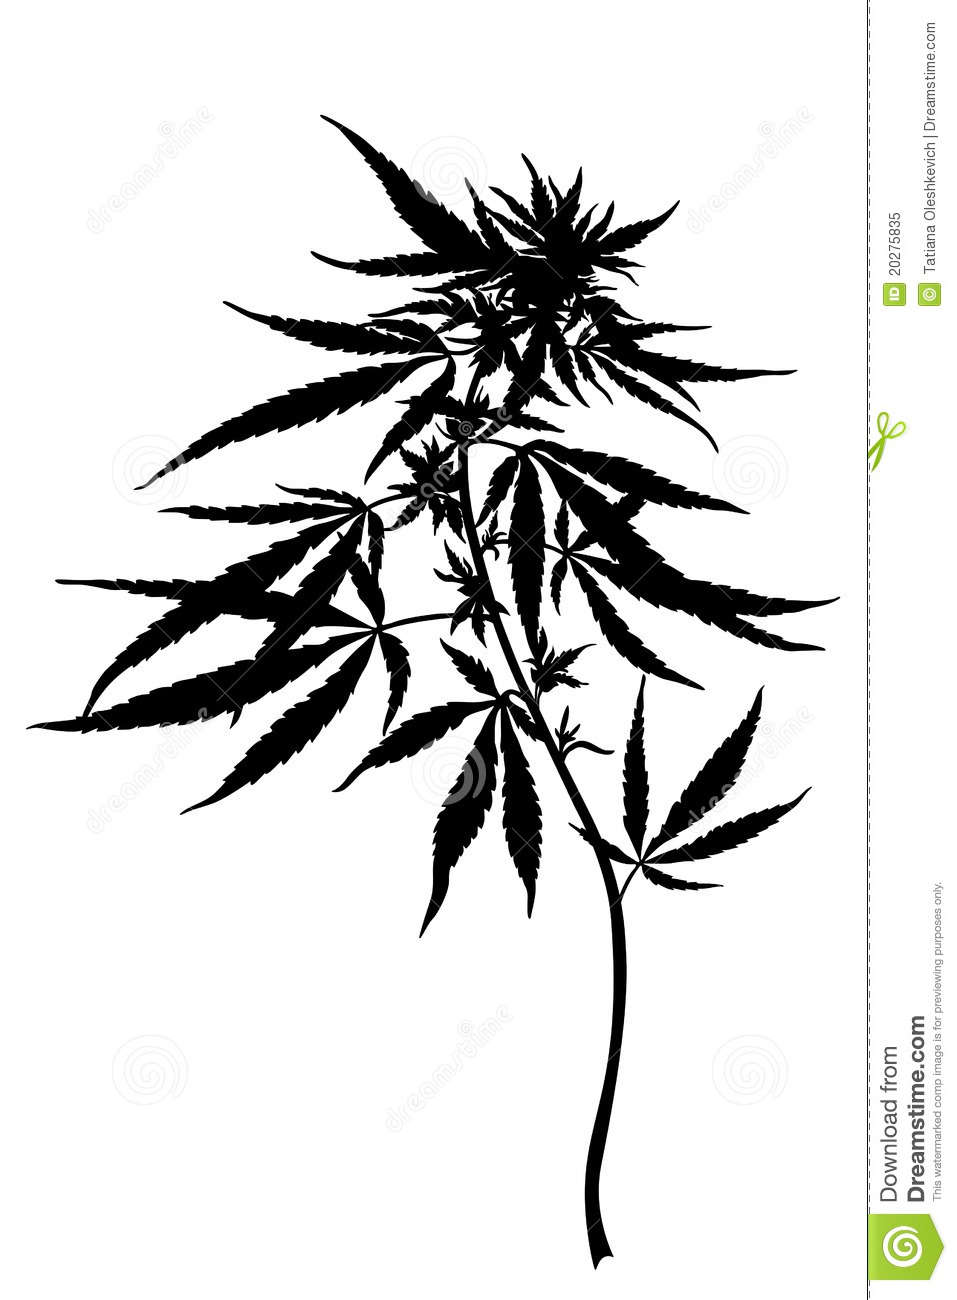 Weed Leaf Sketch at PaintingValley.com | Explore ... |Weed Plant Drawings